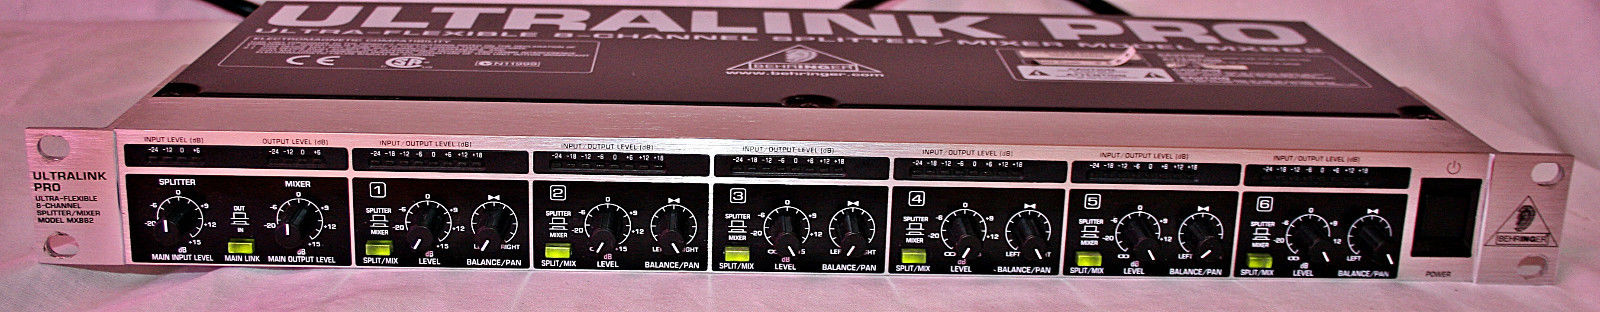 Behringer Ultralink Pro MX882 audio splitter/mixer